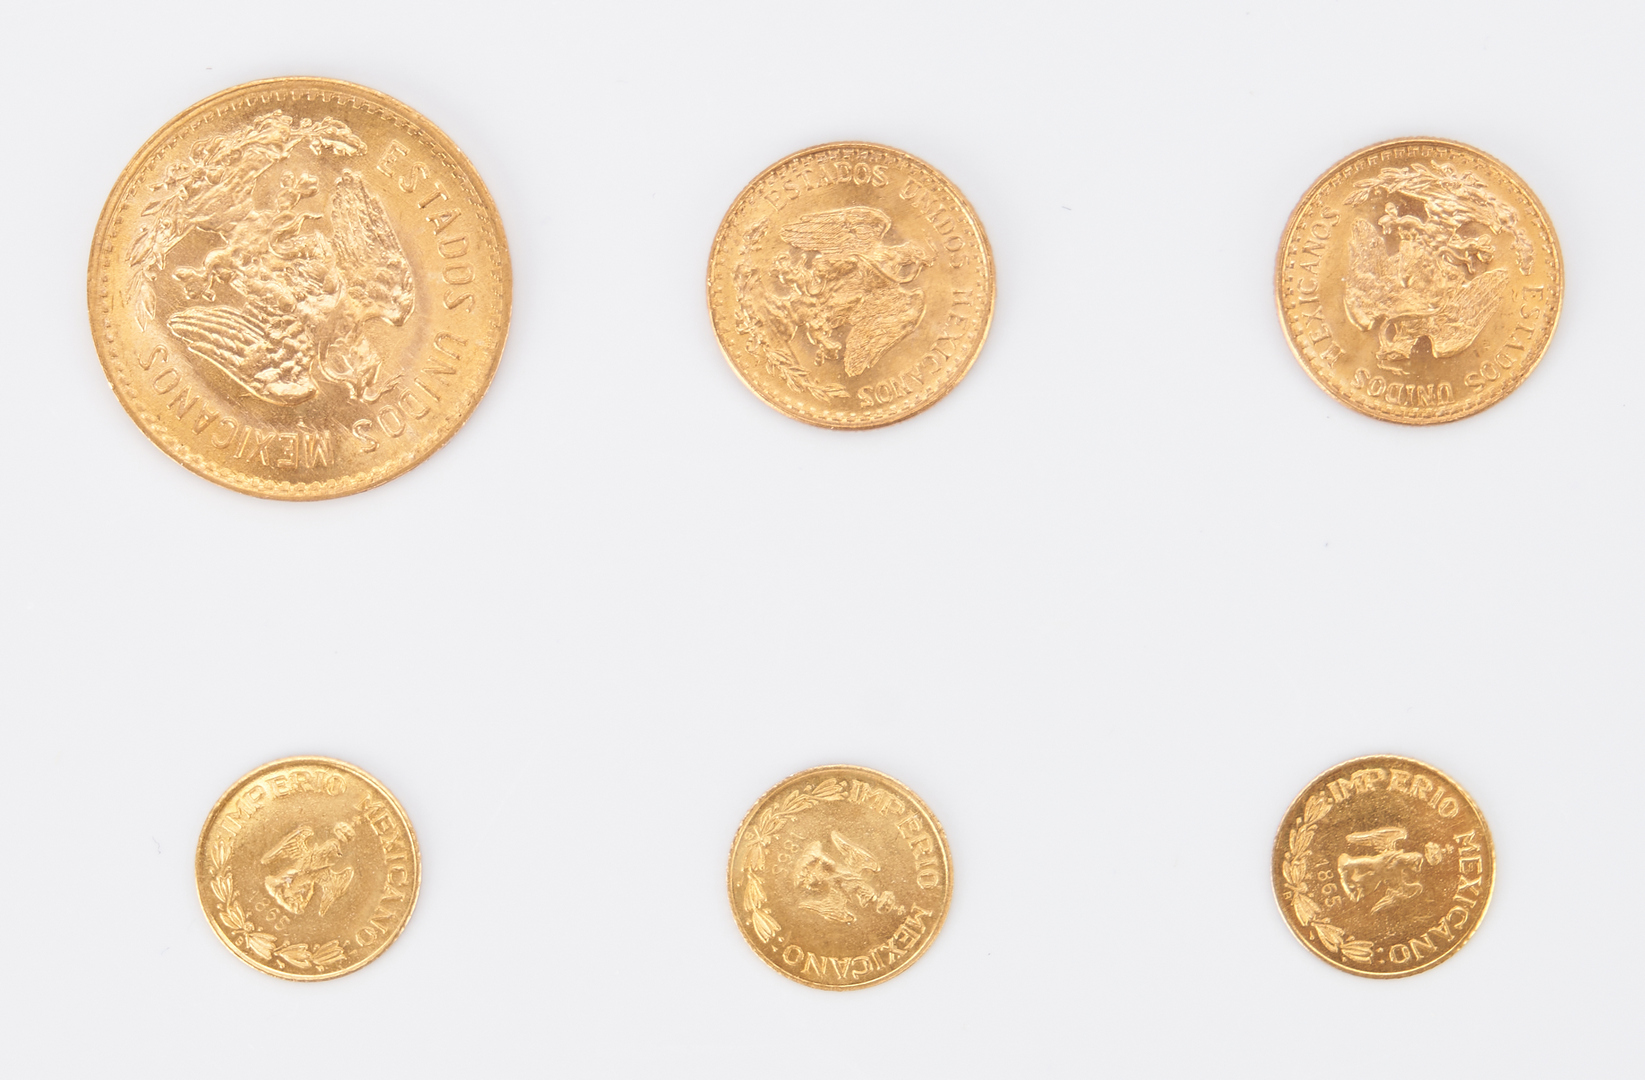 Lot 1163: 5 Mexican Restrike Gold Coins, incl. 1945-55 Pesos